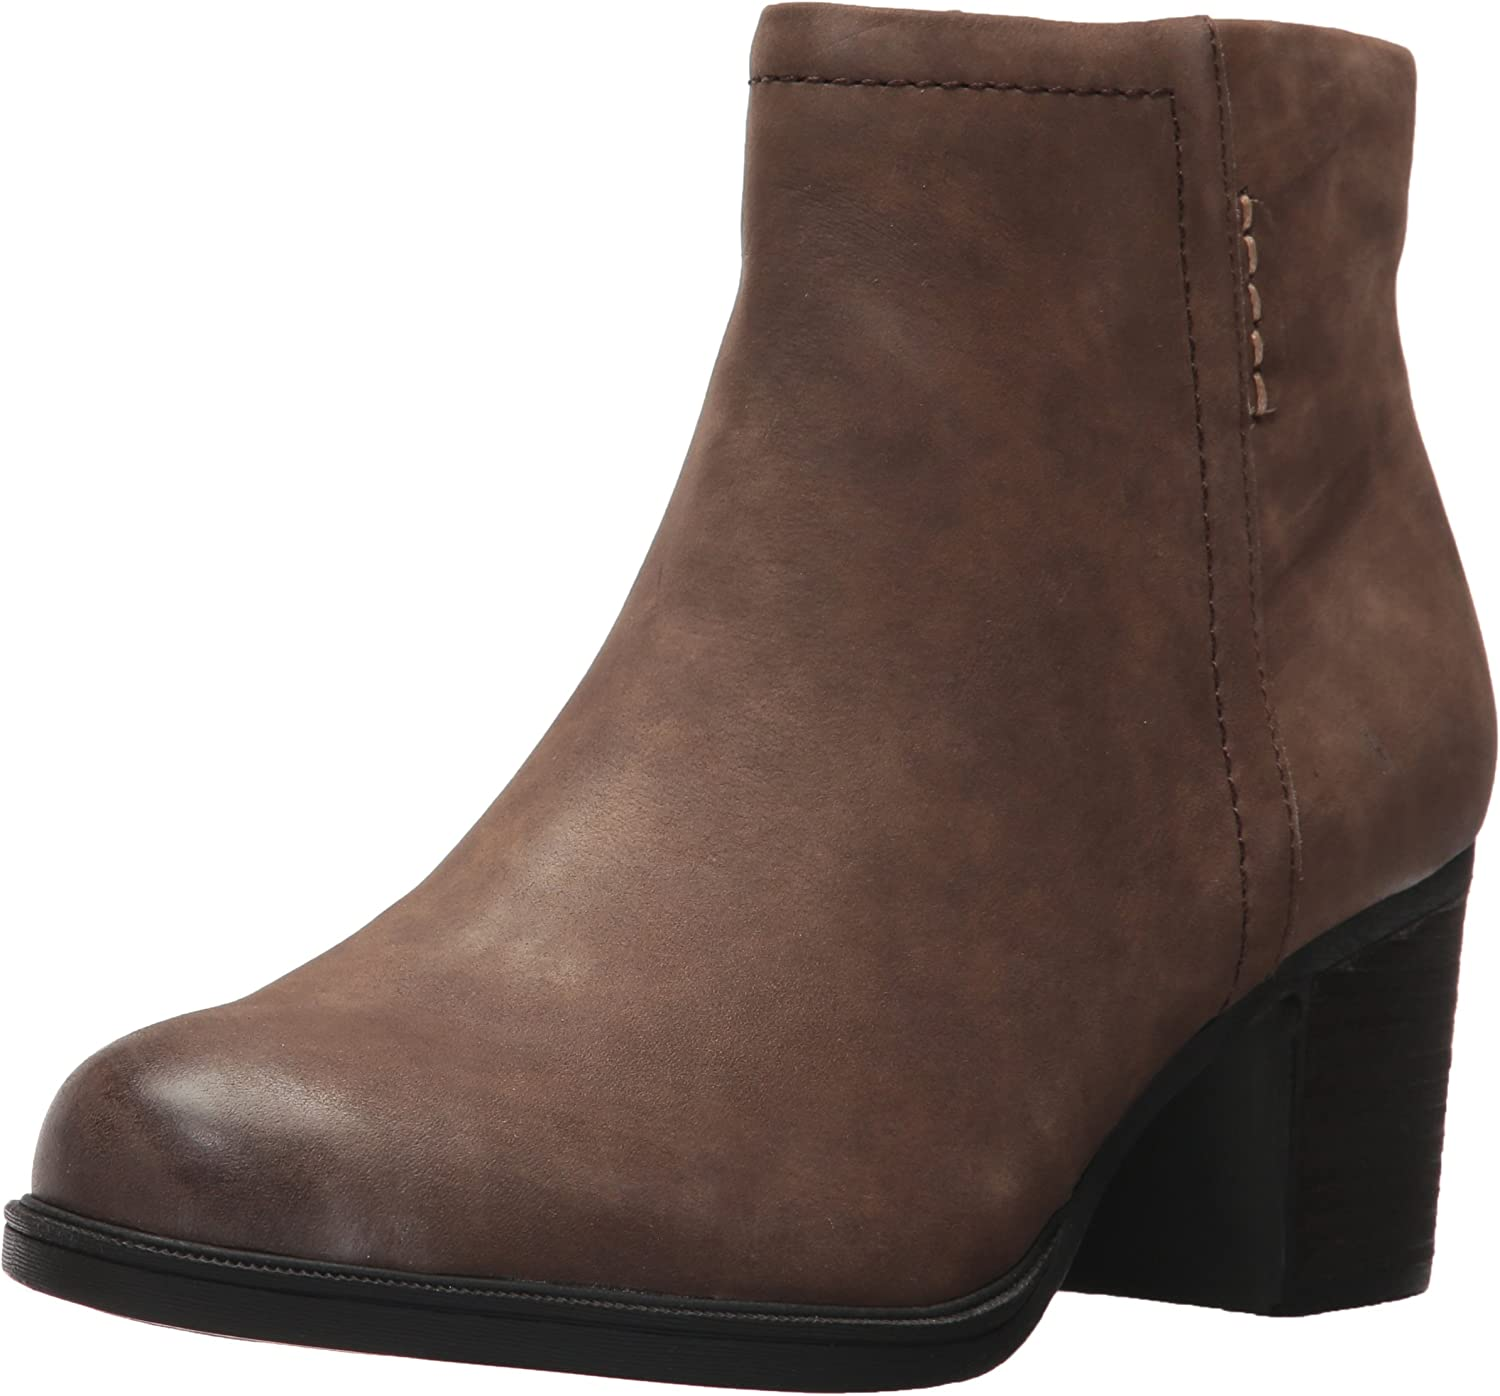 Cobb Hill Women's Natashya Ankle Finally popular brand Bootie Mail order cheap Boot